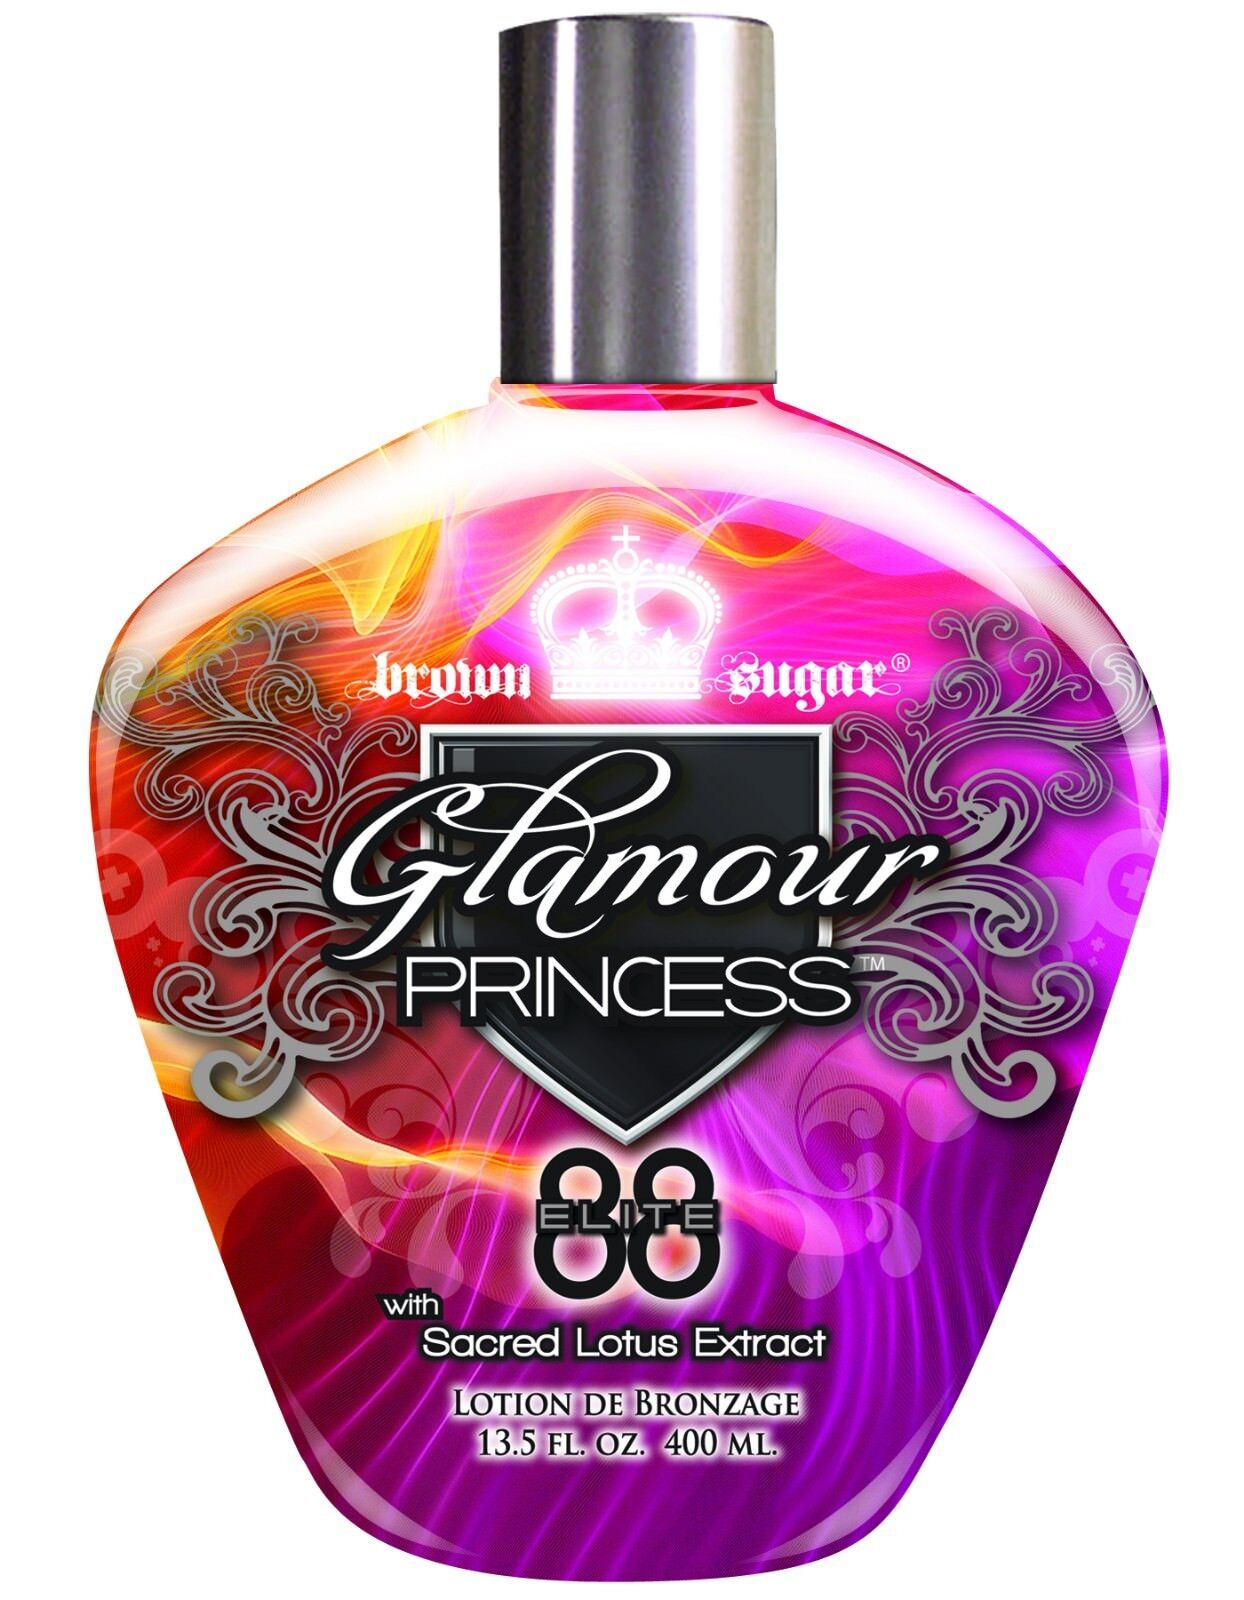 Tan Incorporated Glamour Princess Bronzer Tanning Lotion 13.